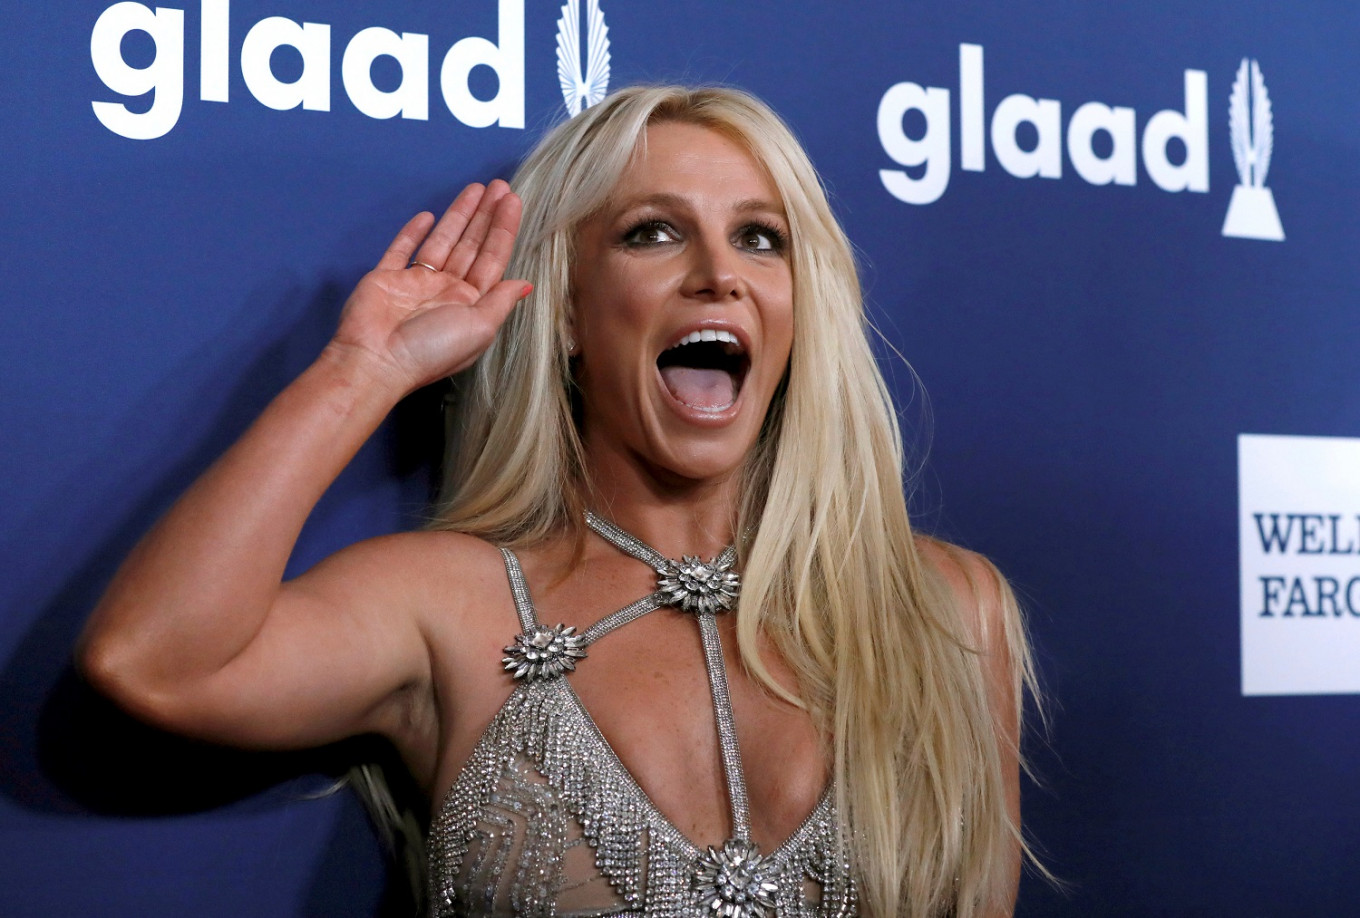 Britney Spears takes some 'me time' after dad's second surgery